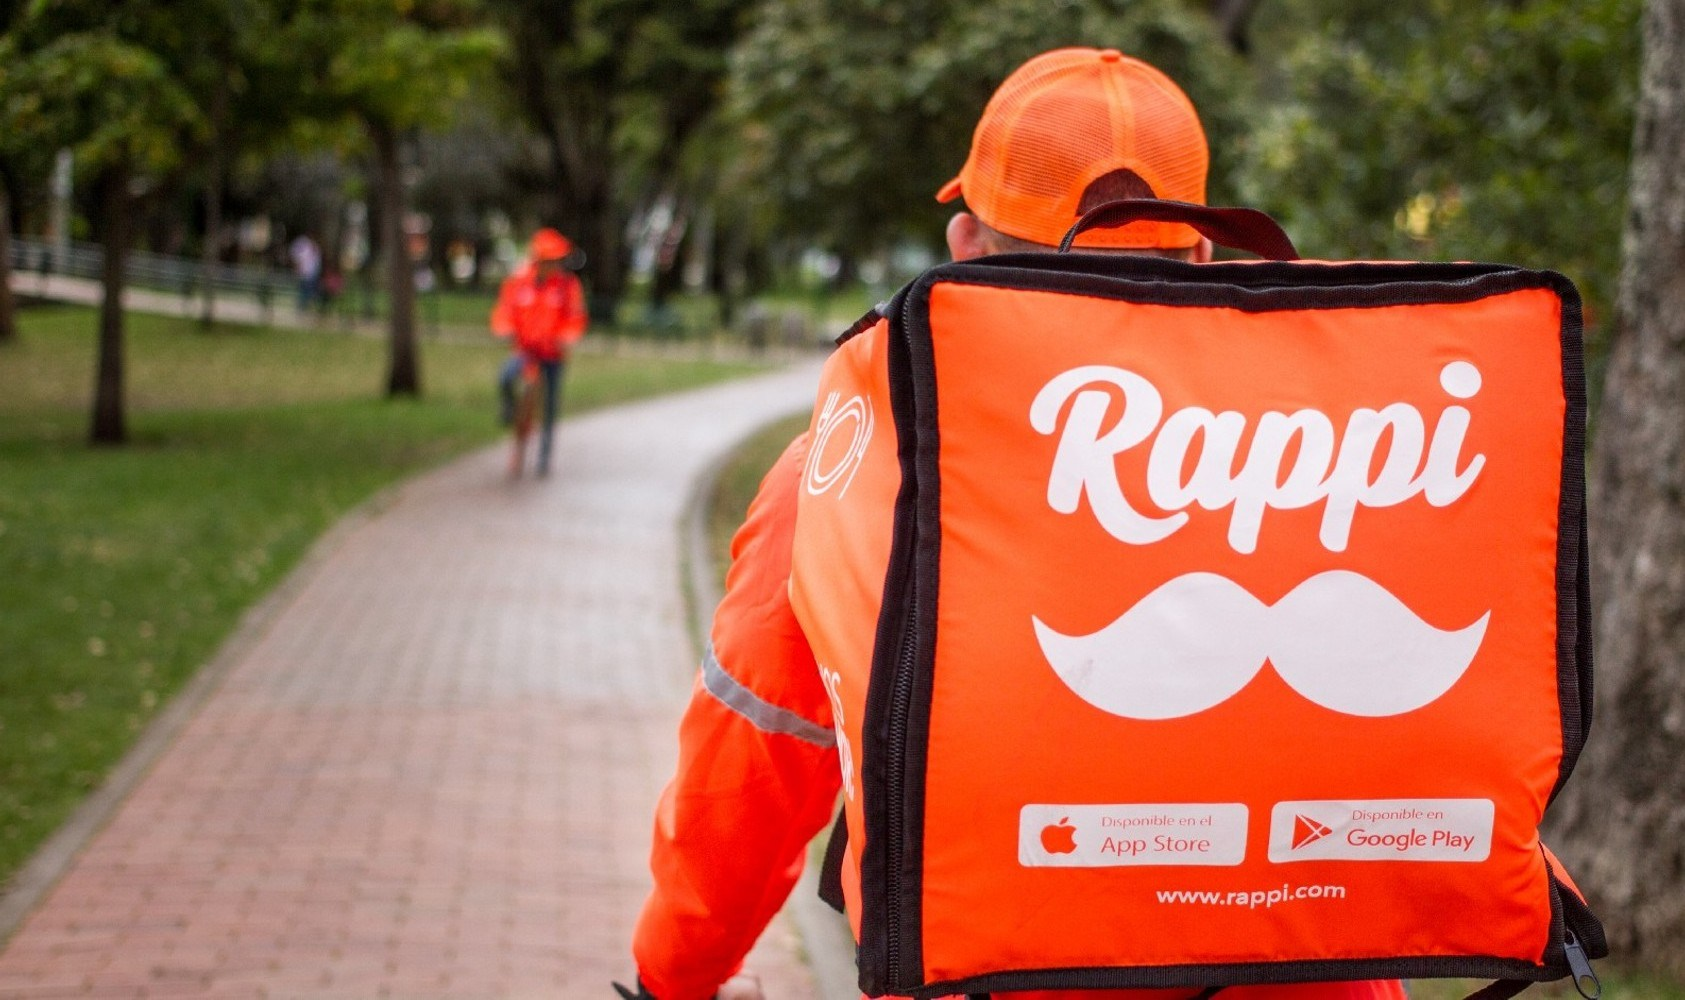 Colombian Startup Rappi Plans to Expand to 100 New Cities